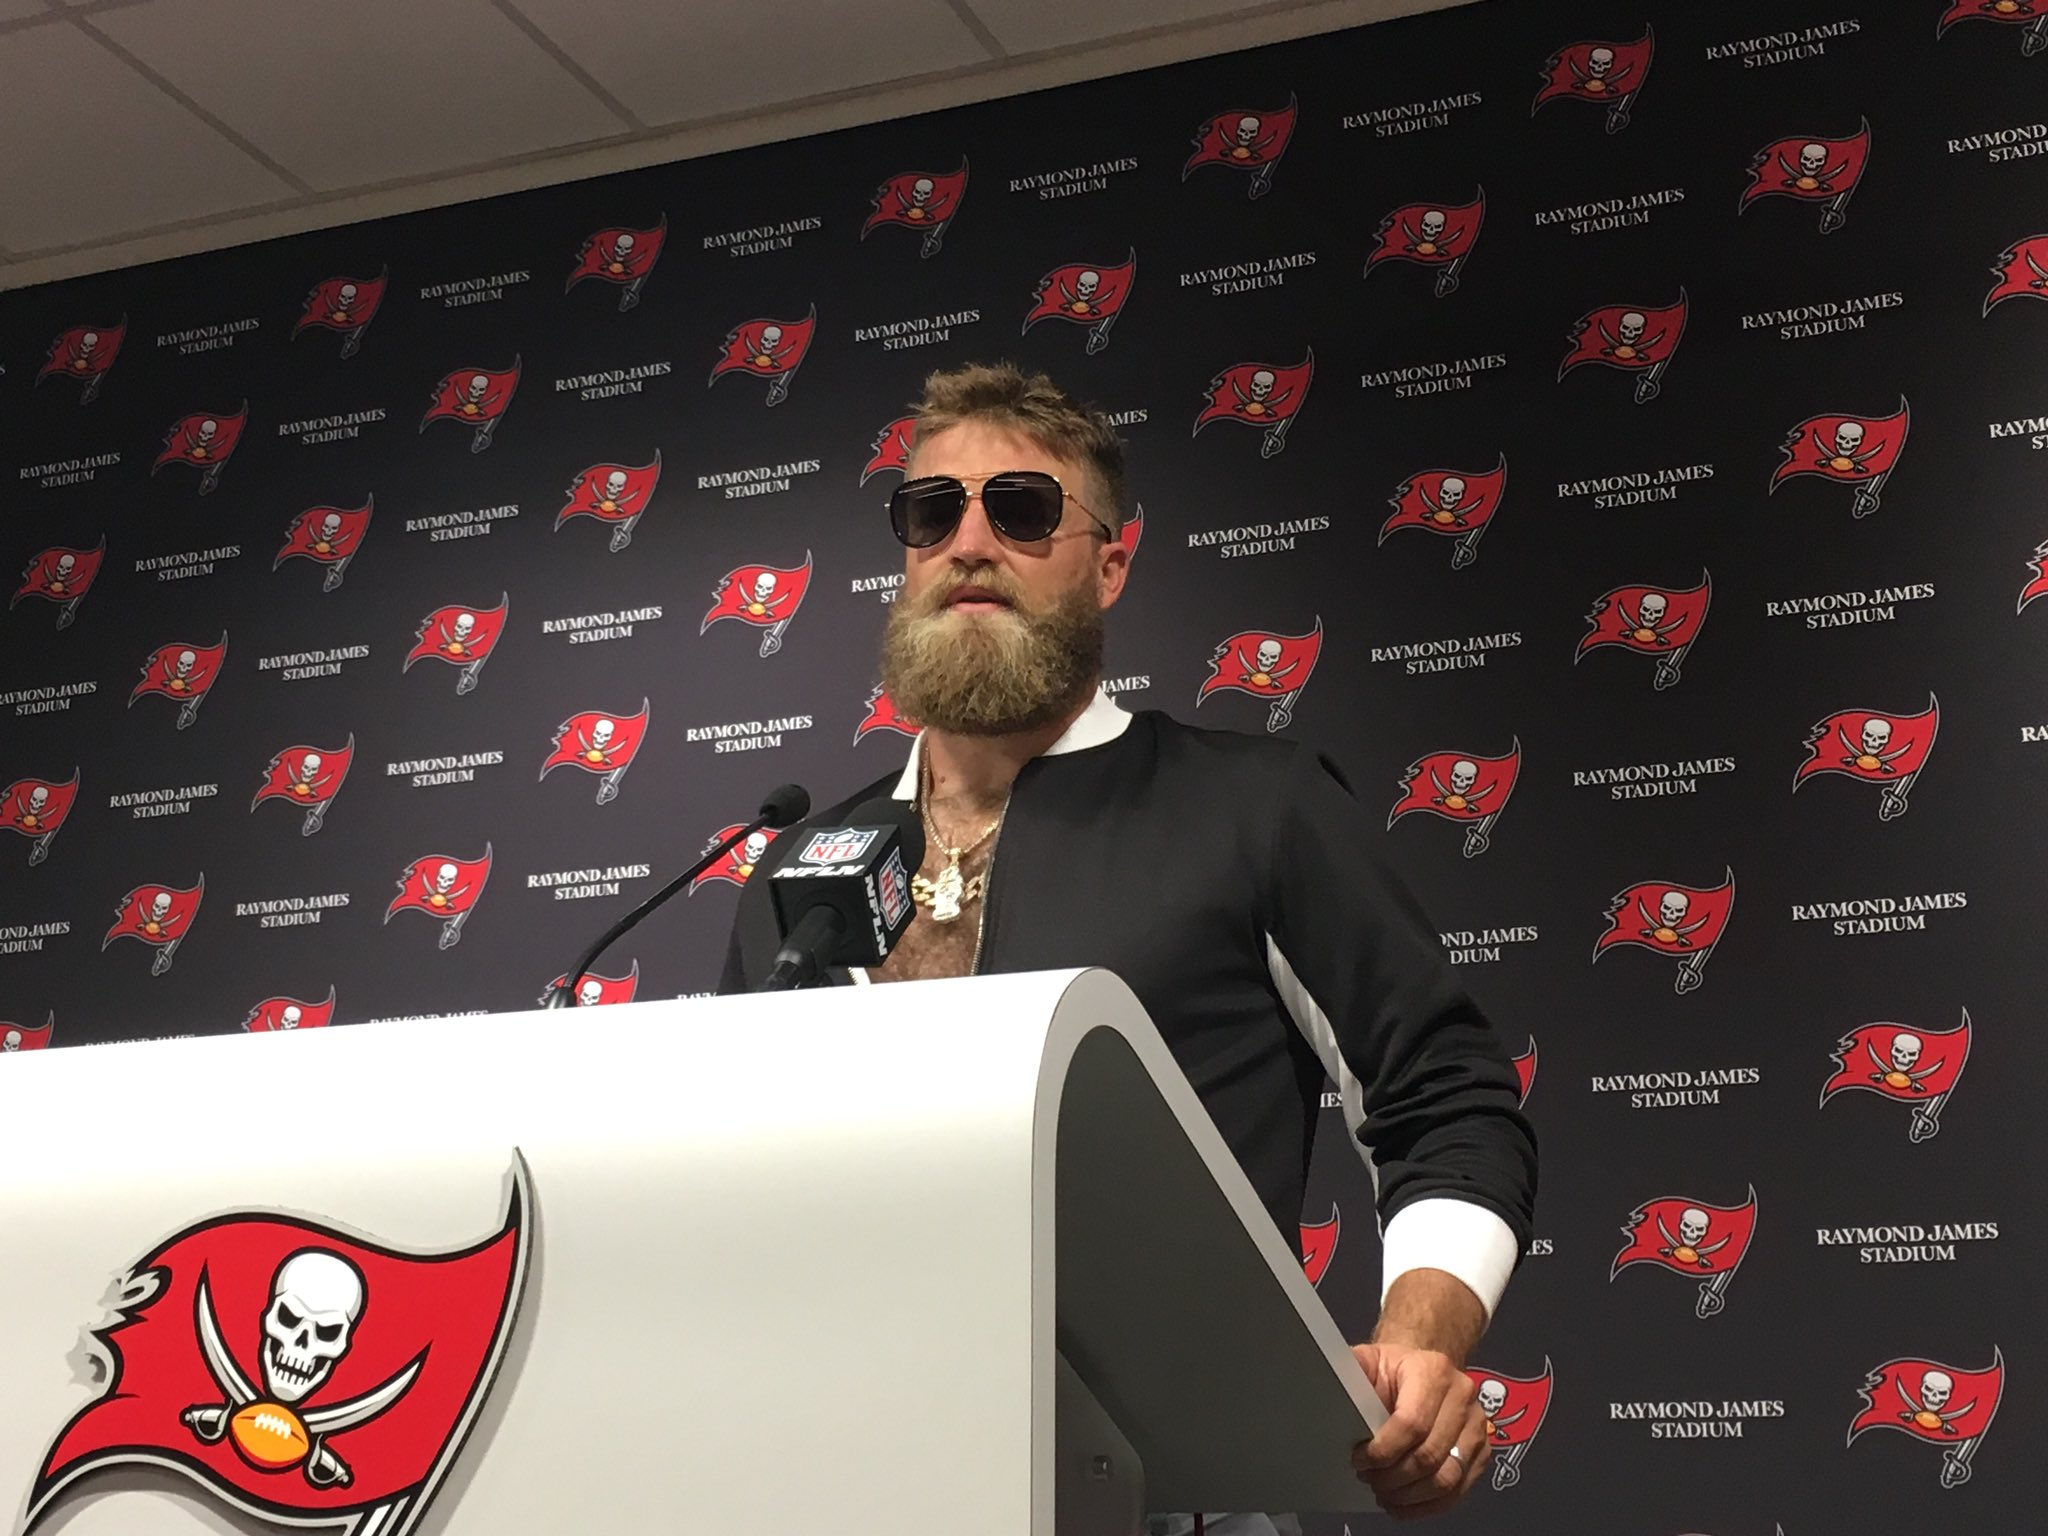 Bucs Eagles Ryan Fitzpatrick Teammates Are Not Who We Thought They Were